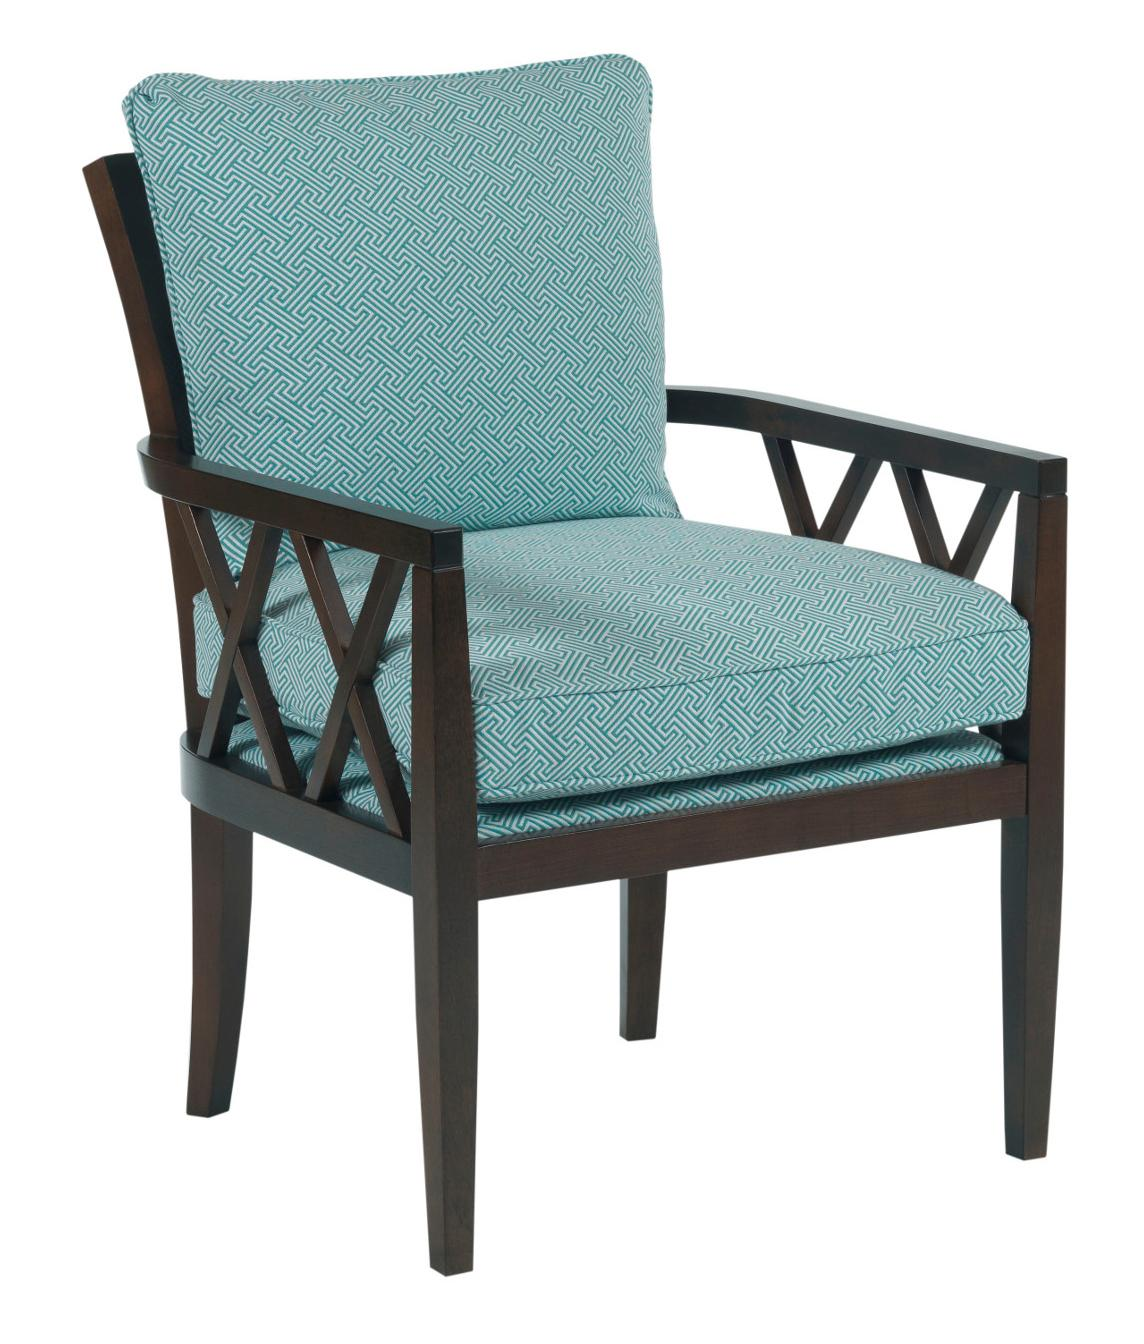 Kincaid furniture accent chairs veranda chair with exposed